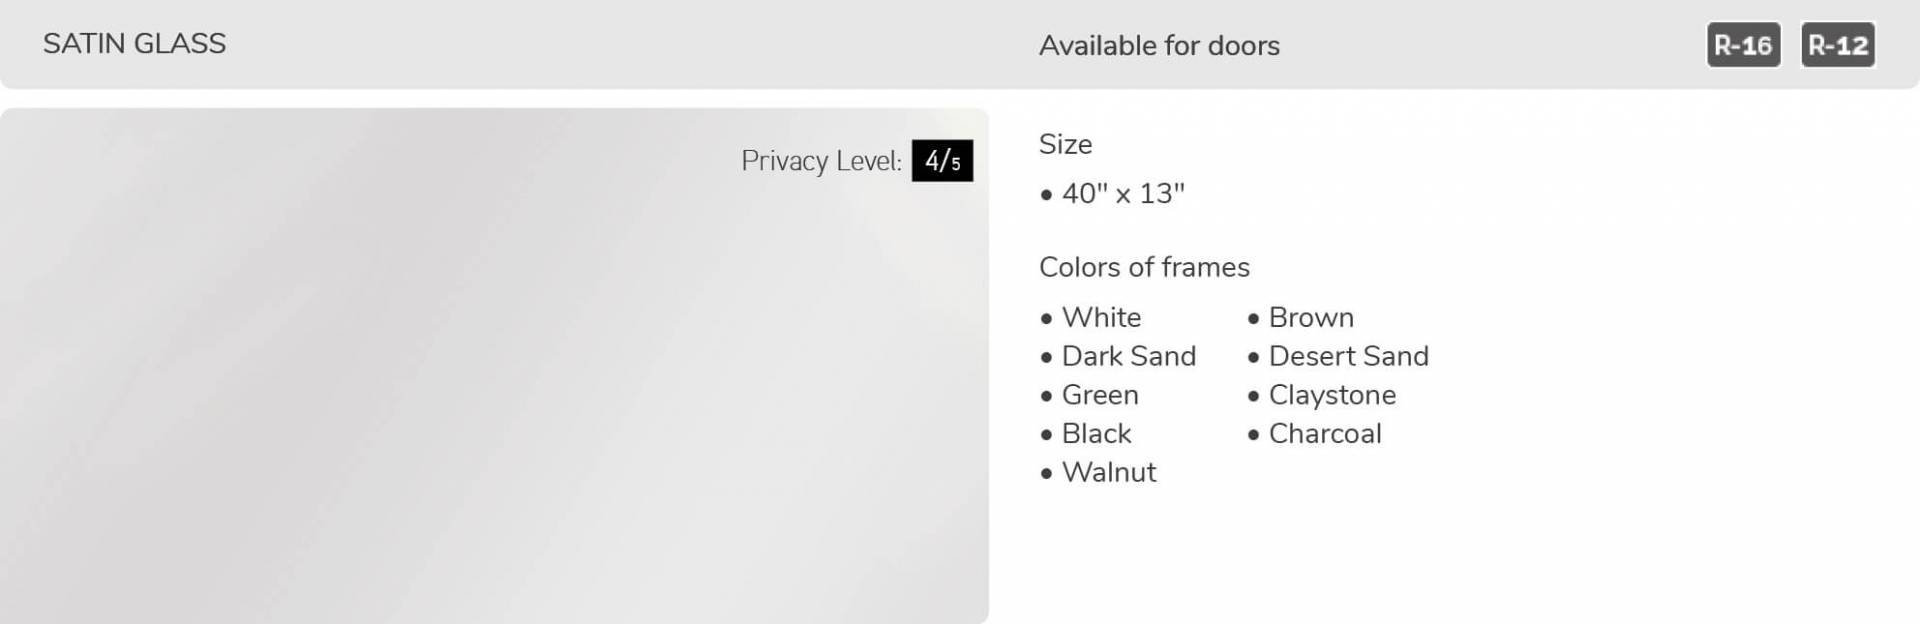 Satin glass, 40' x 13', available for door R-16 and R-12